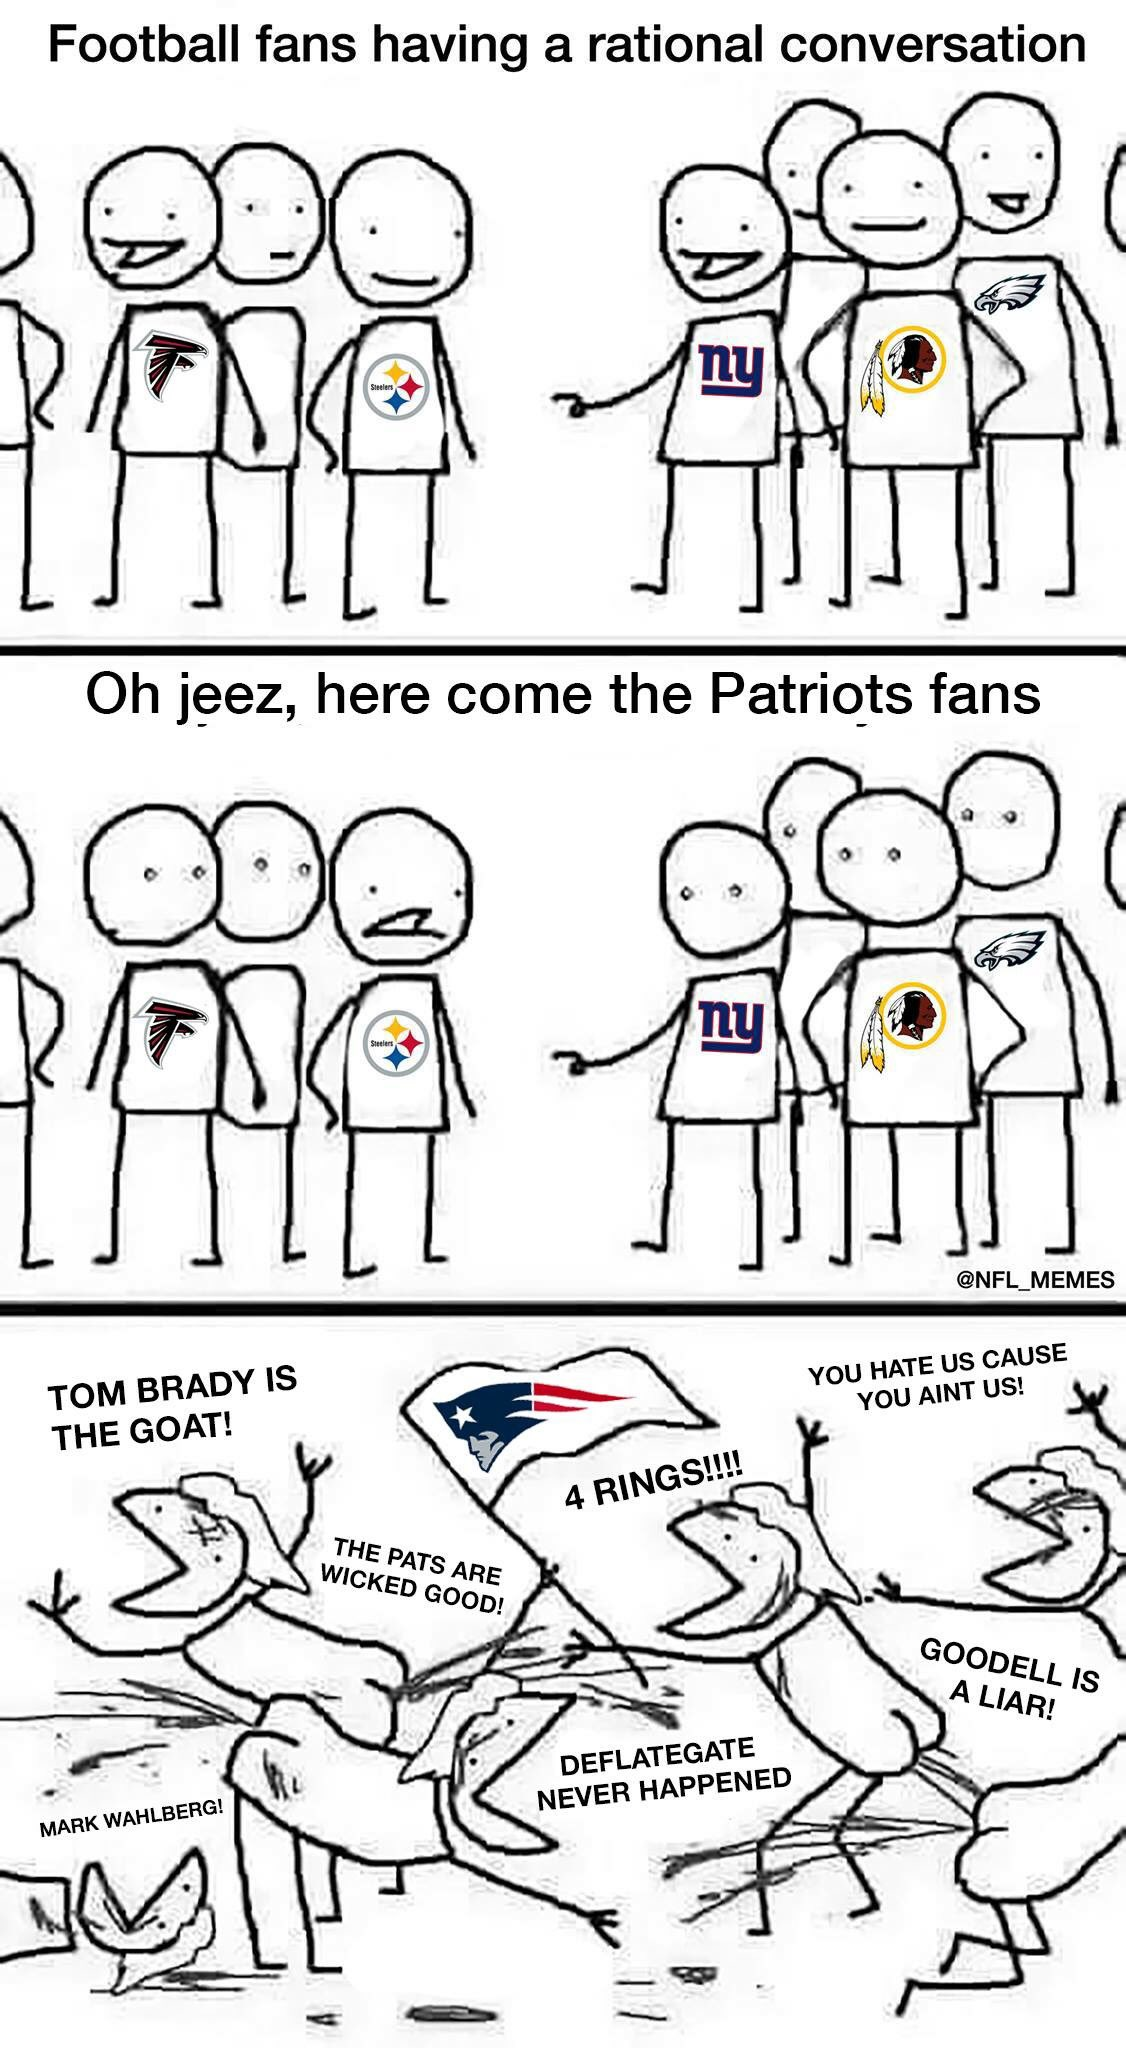 C3dwKhrW8AIrV4A large nfl memes on twitter \